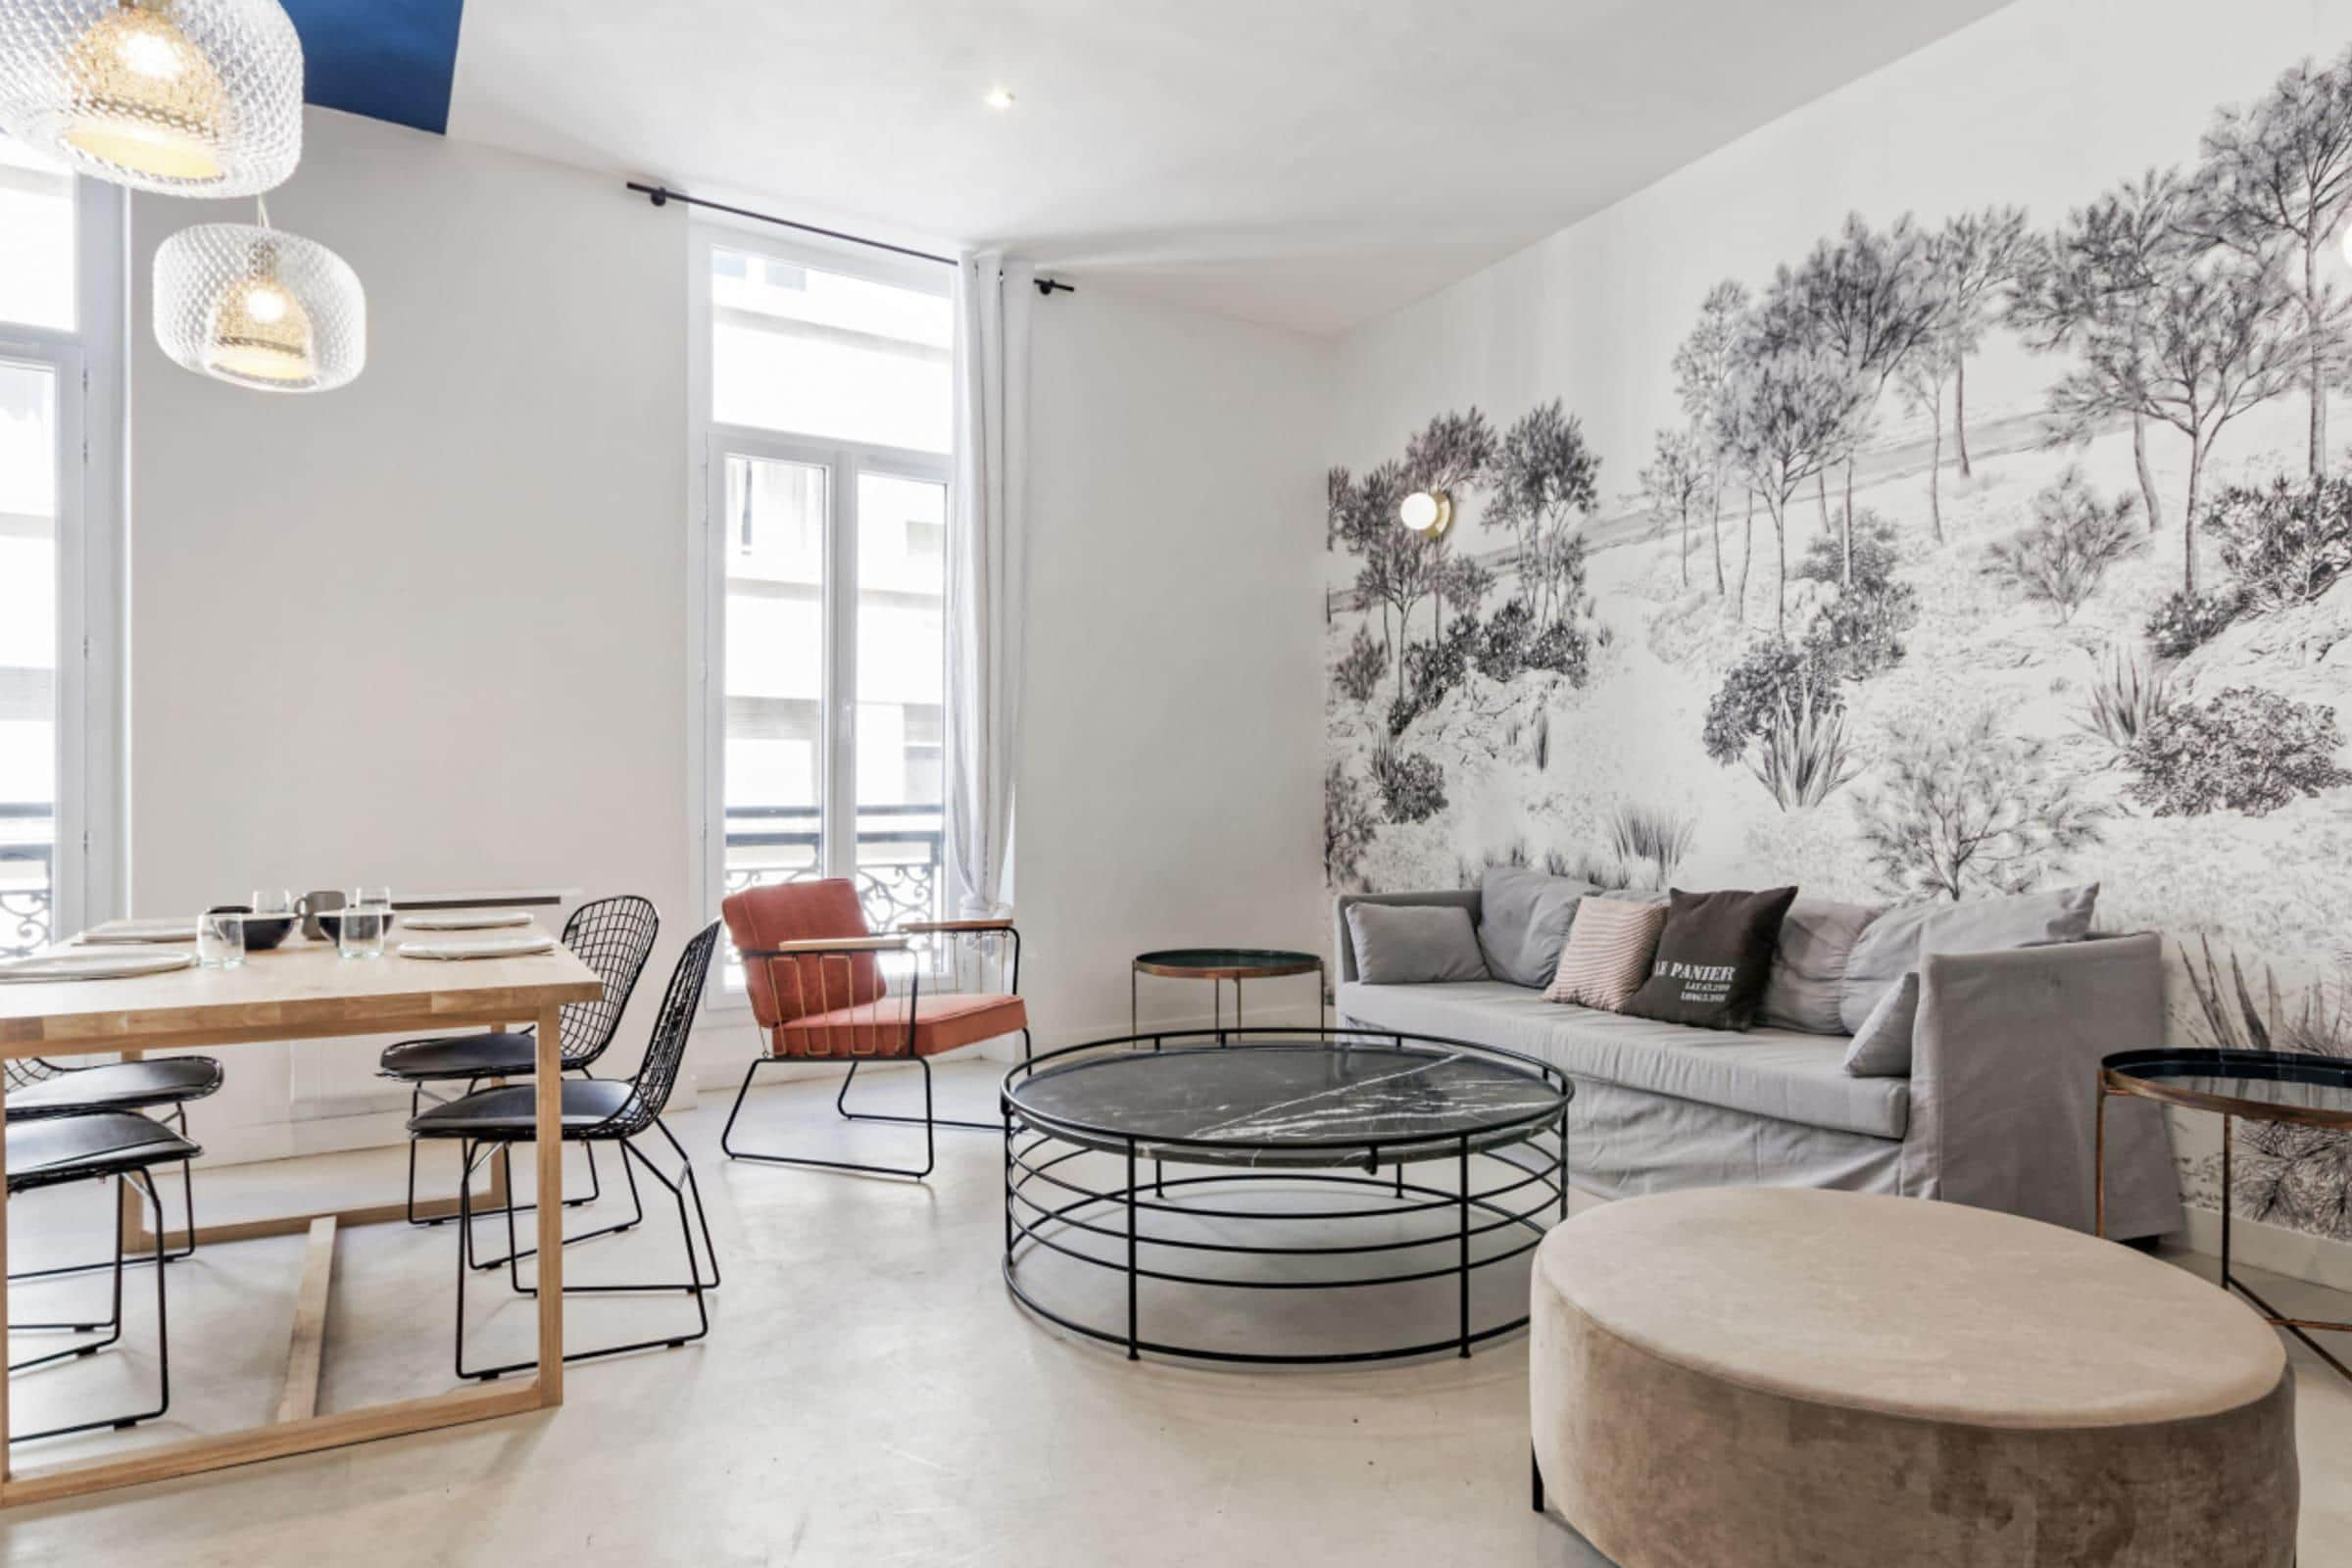 Property Image 1 - Marseille Exquisite Chic Apartment with High Ceilings